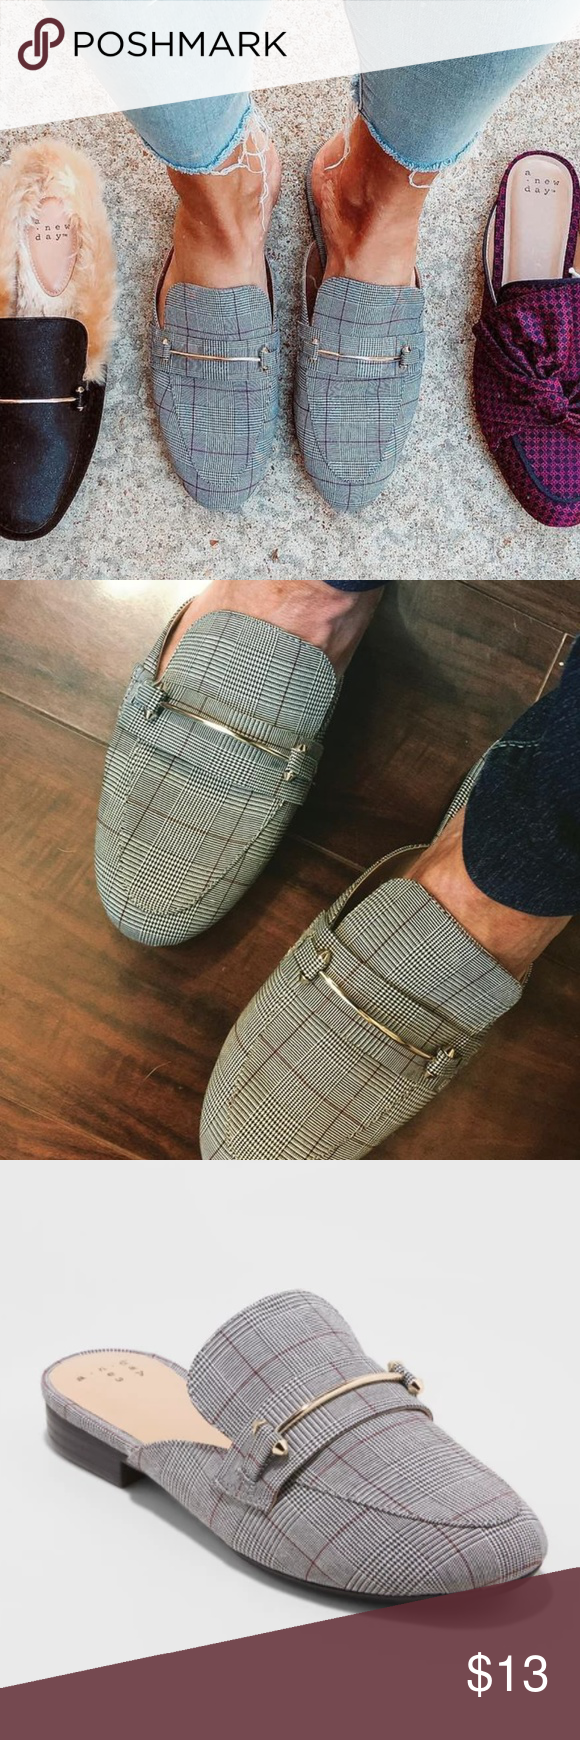 Women/'s Remmy Plaid Backless Loafers A New Day ALL SIZES